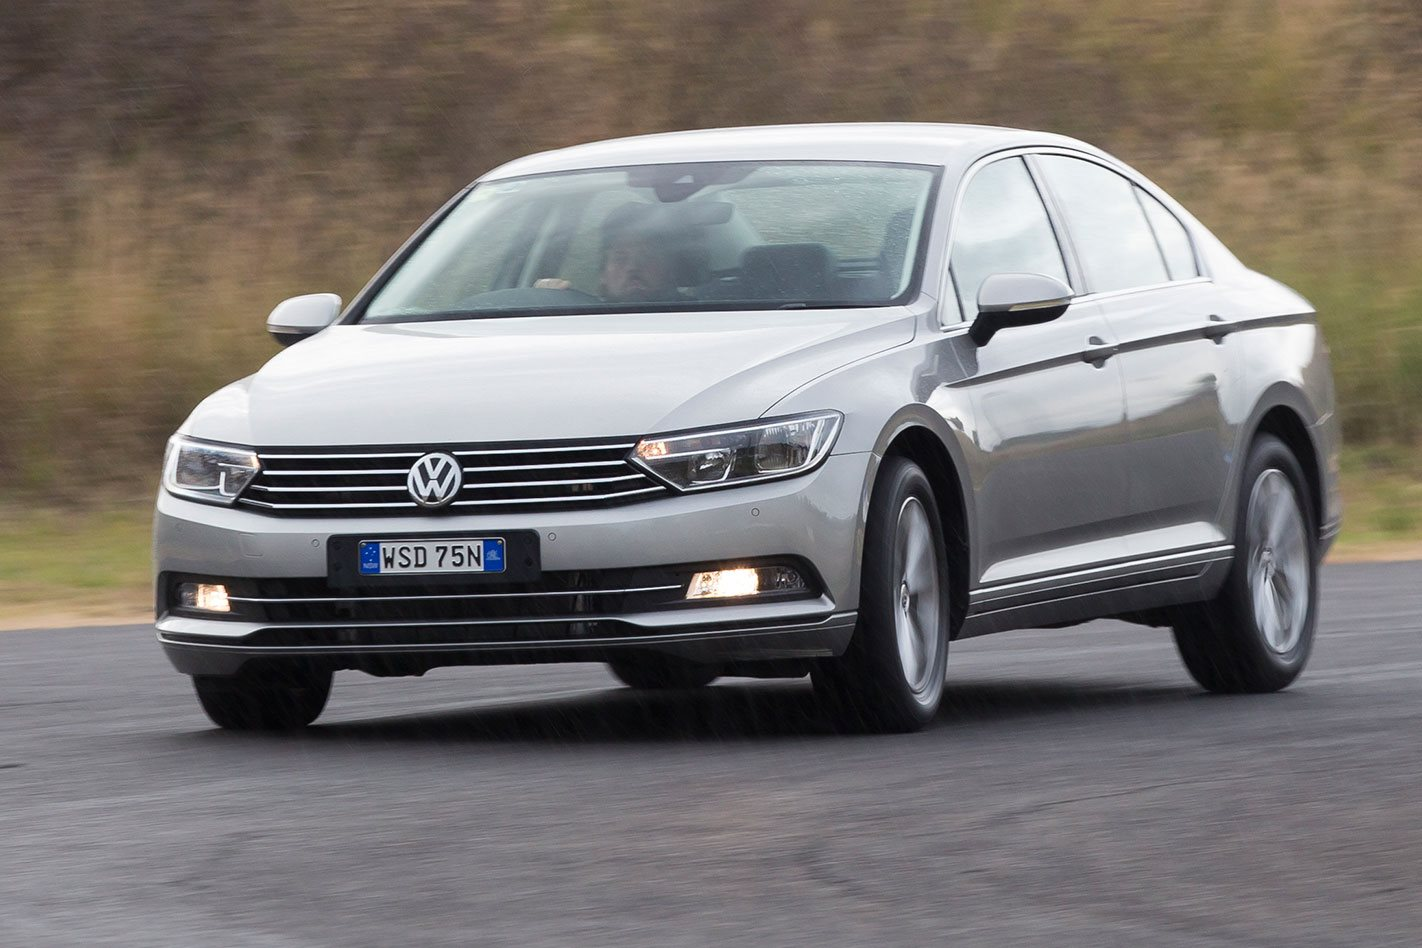 Volkswagen Passat Review, Price & Features